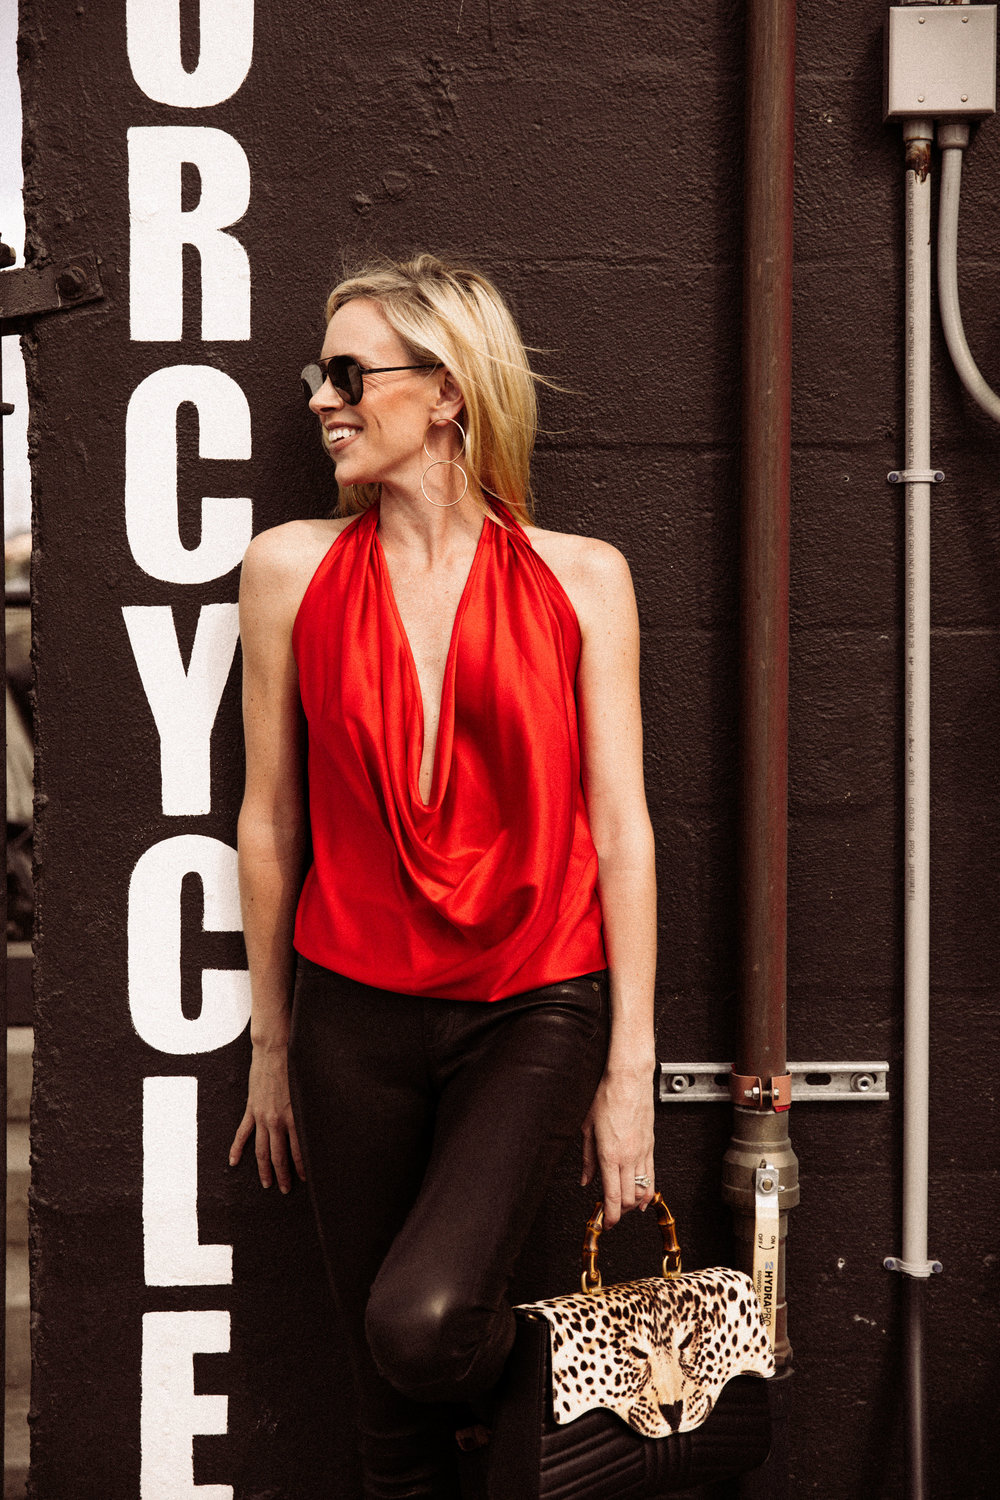 Redefining Red: How to style red with elegance and glamour, while keeping its sultry vibe. Though it's been labeled like the Scarlet Letter, red can be much more than devilishly precarious. It can bring both power and interest to an outfit at the same time. - Krista Glover | Chic Meets West